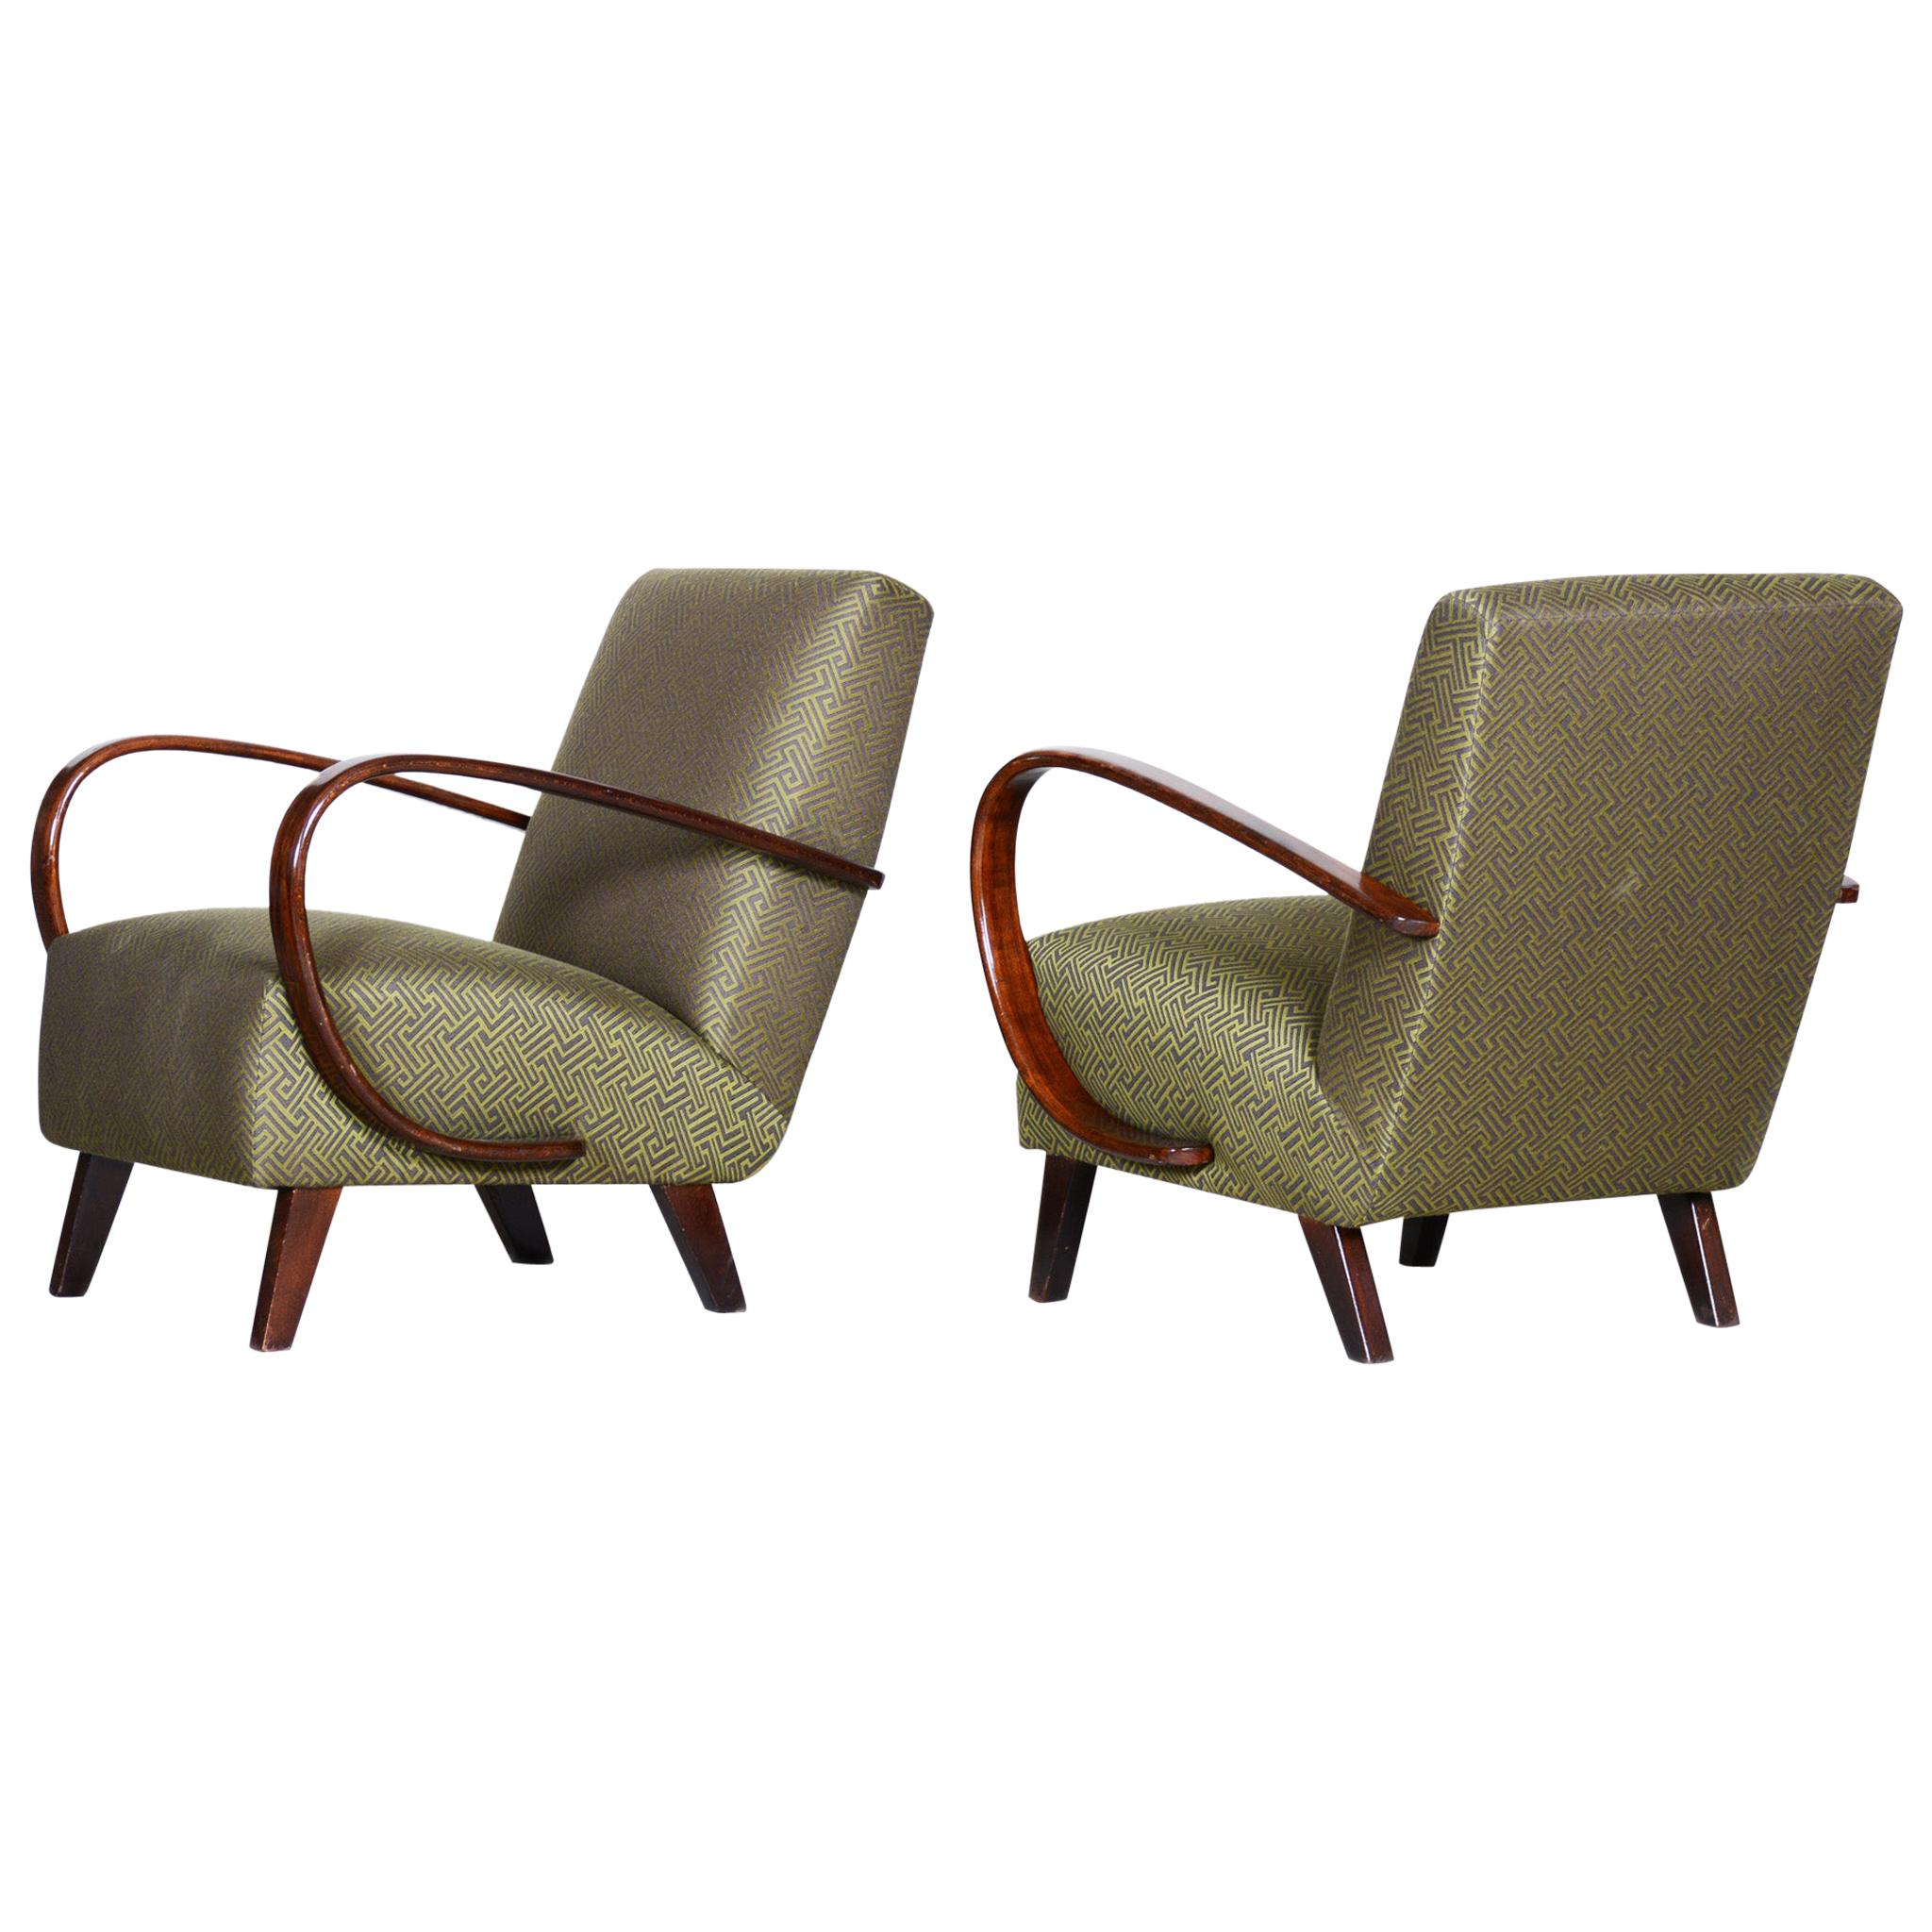 Pair of Green Czech Art Deco Beech Armchairs 1930s, Jindrich Halabala, UP Zavody